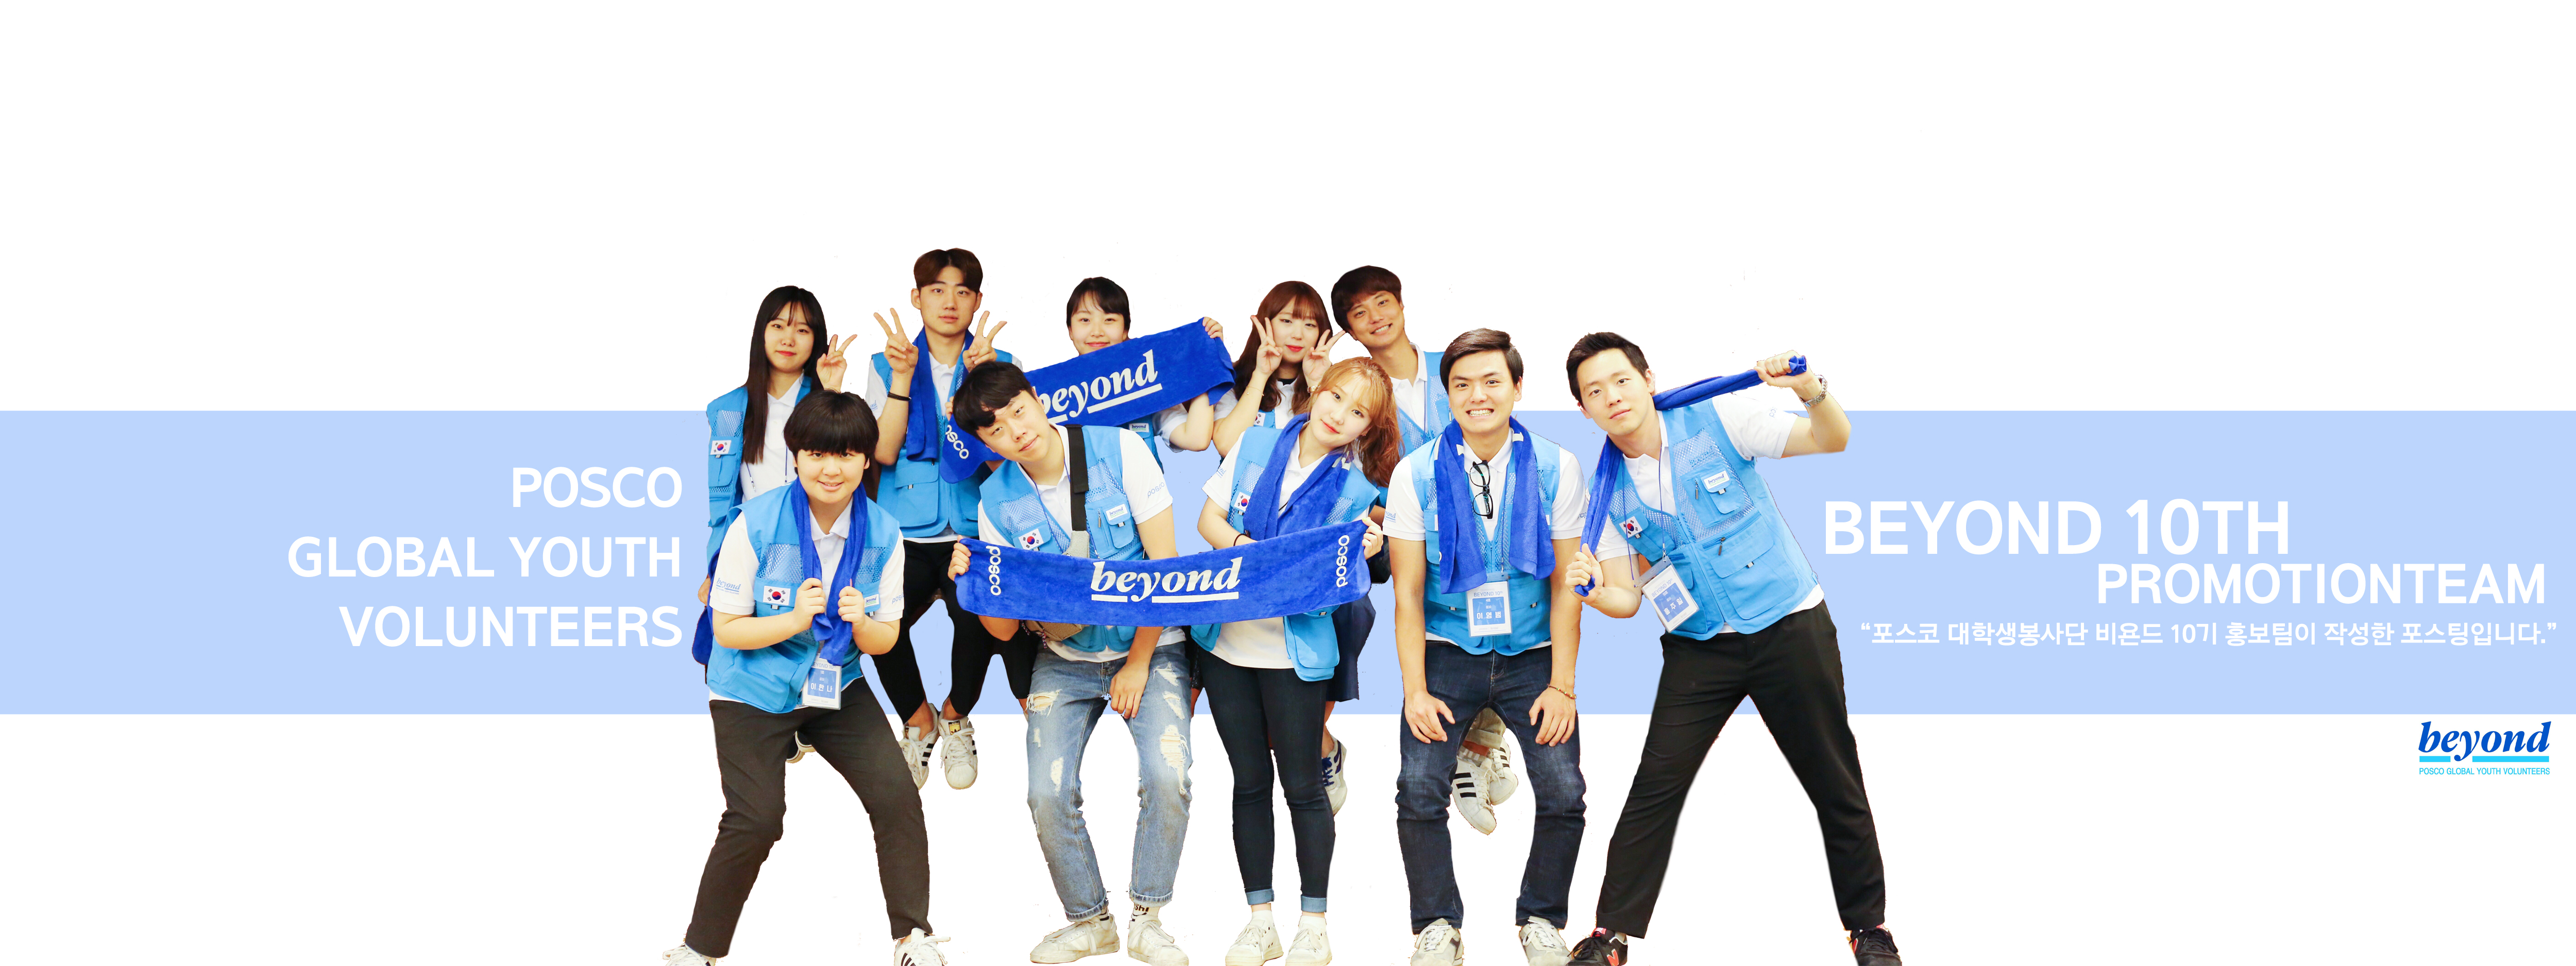 posco global youth volunteers beyond 10th promotionteam